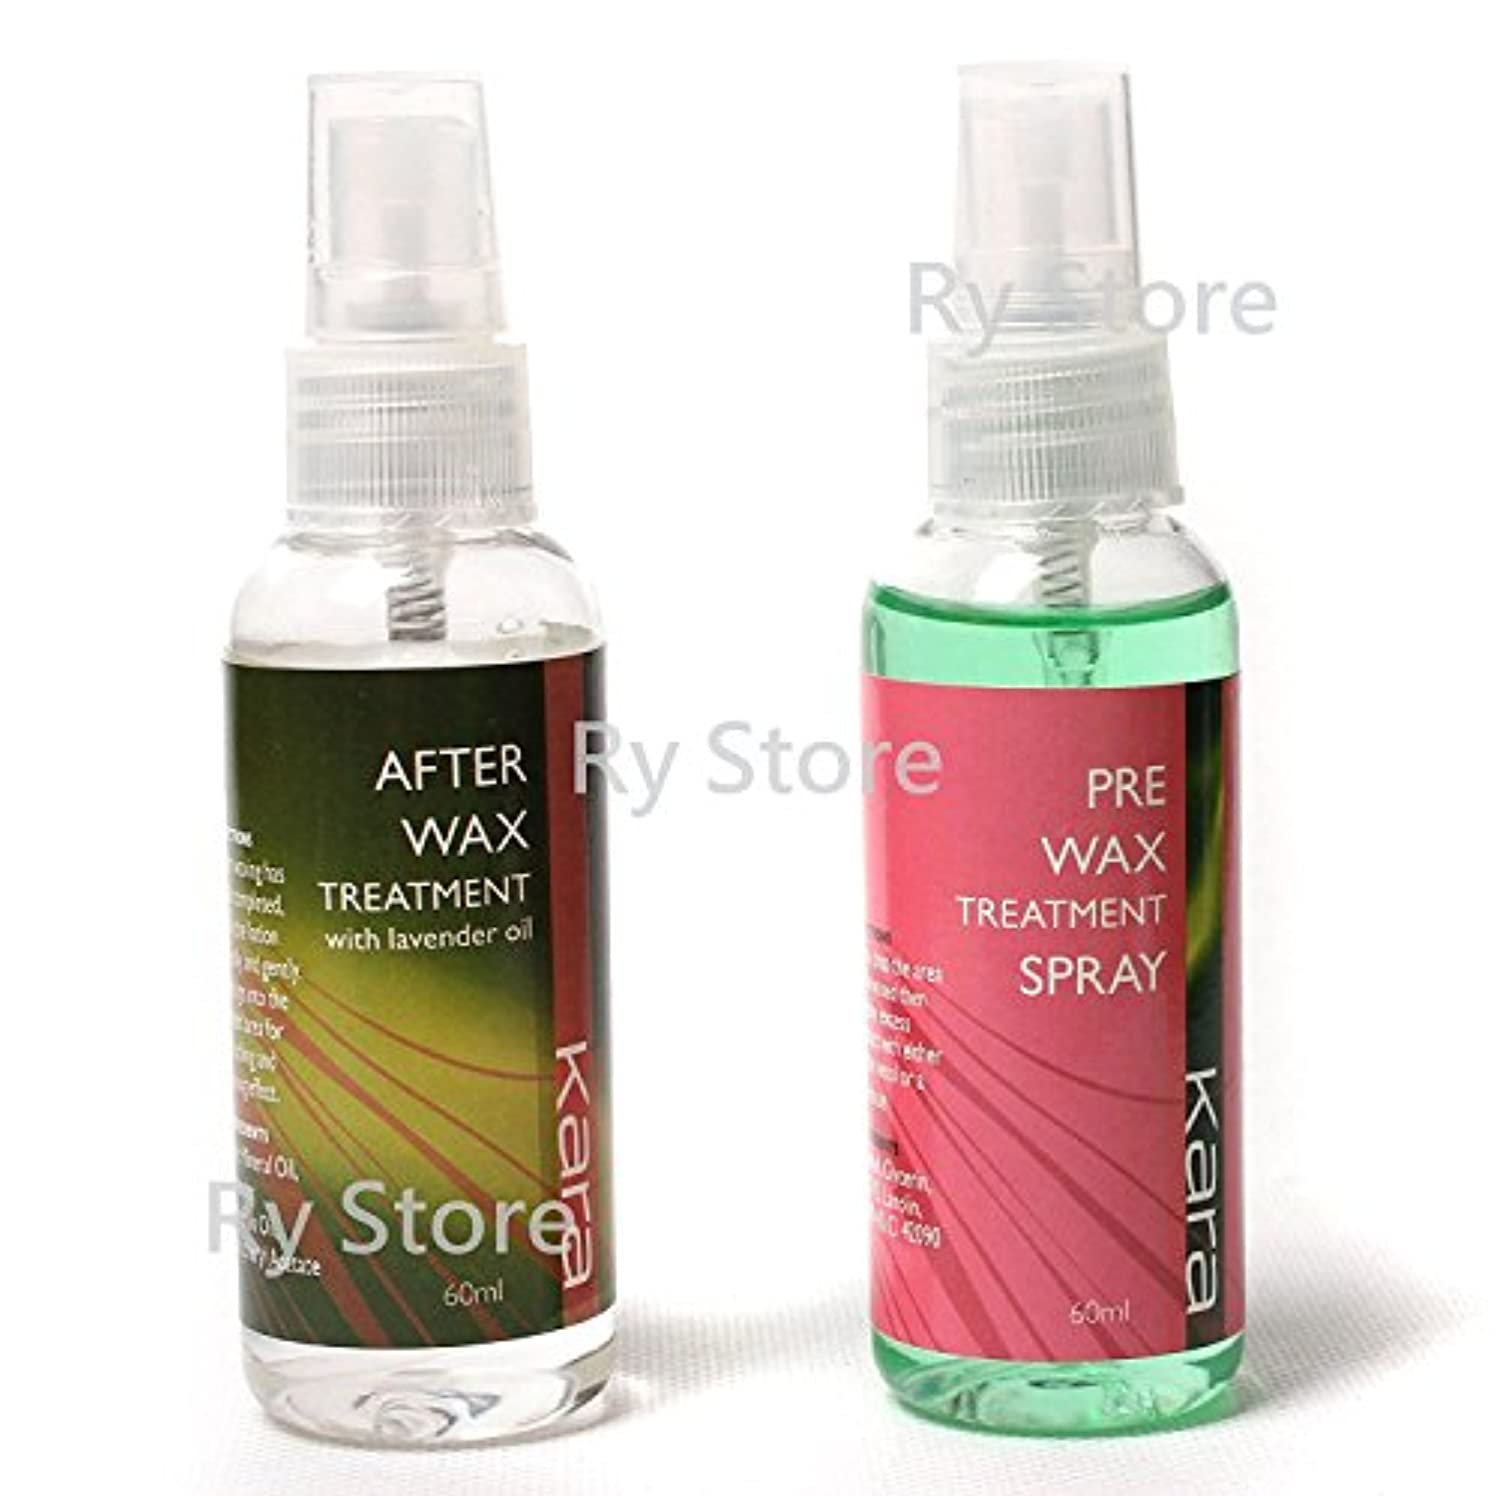 US Seller 2 in 1 Pre After Wax Treatment Spray Before Post Waxing Liquid Hair Removal Skin Care Depilatory Tools 60ml